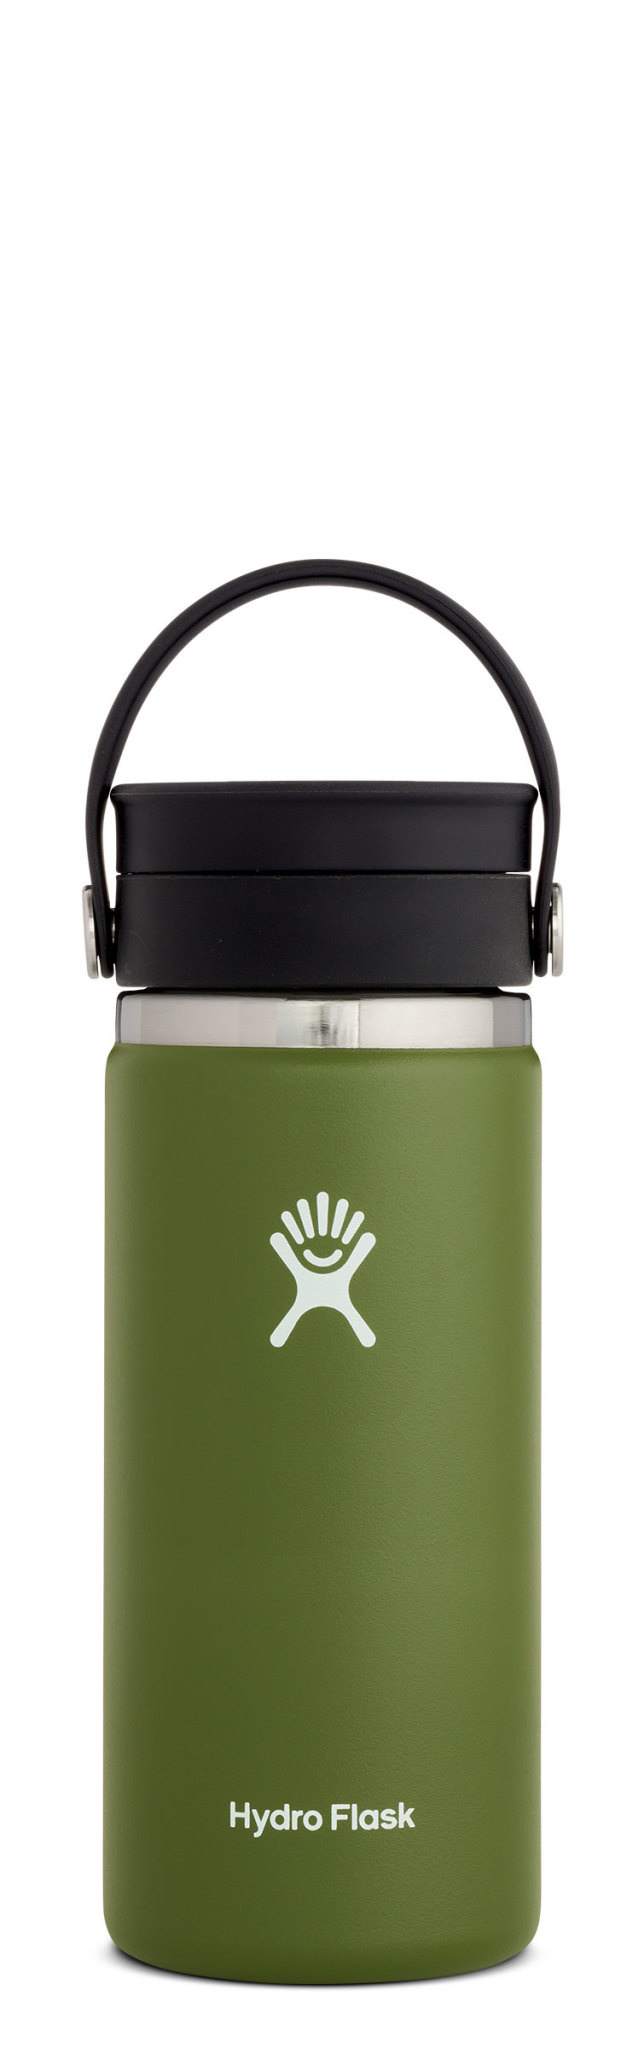 Hydro Flask 16oz Wide Mouth with Flex Sip Lid-3